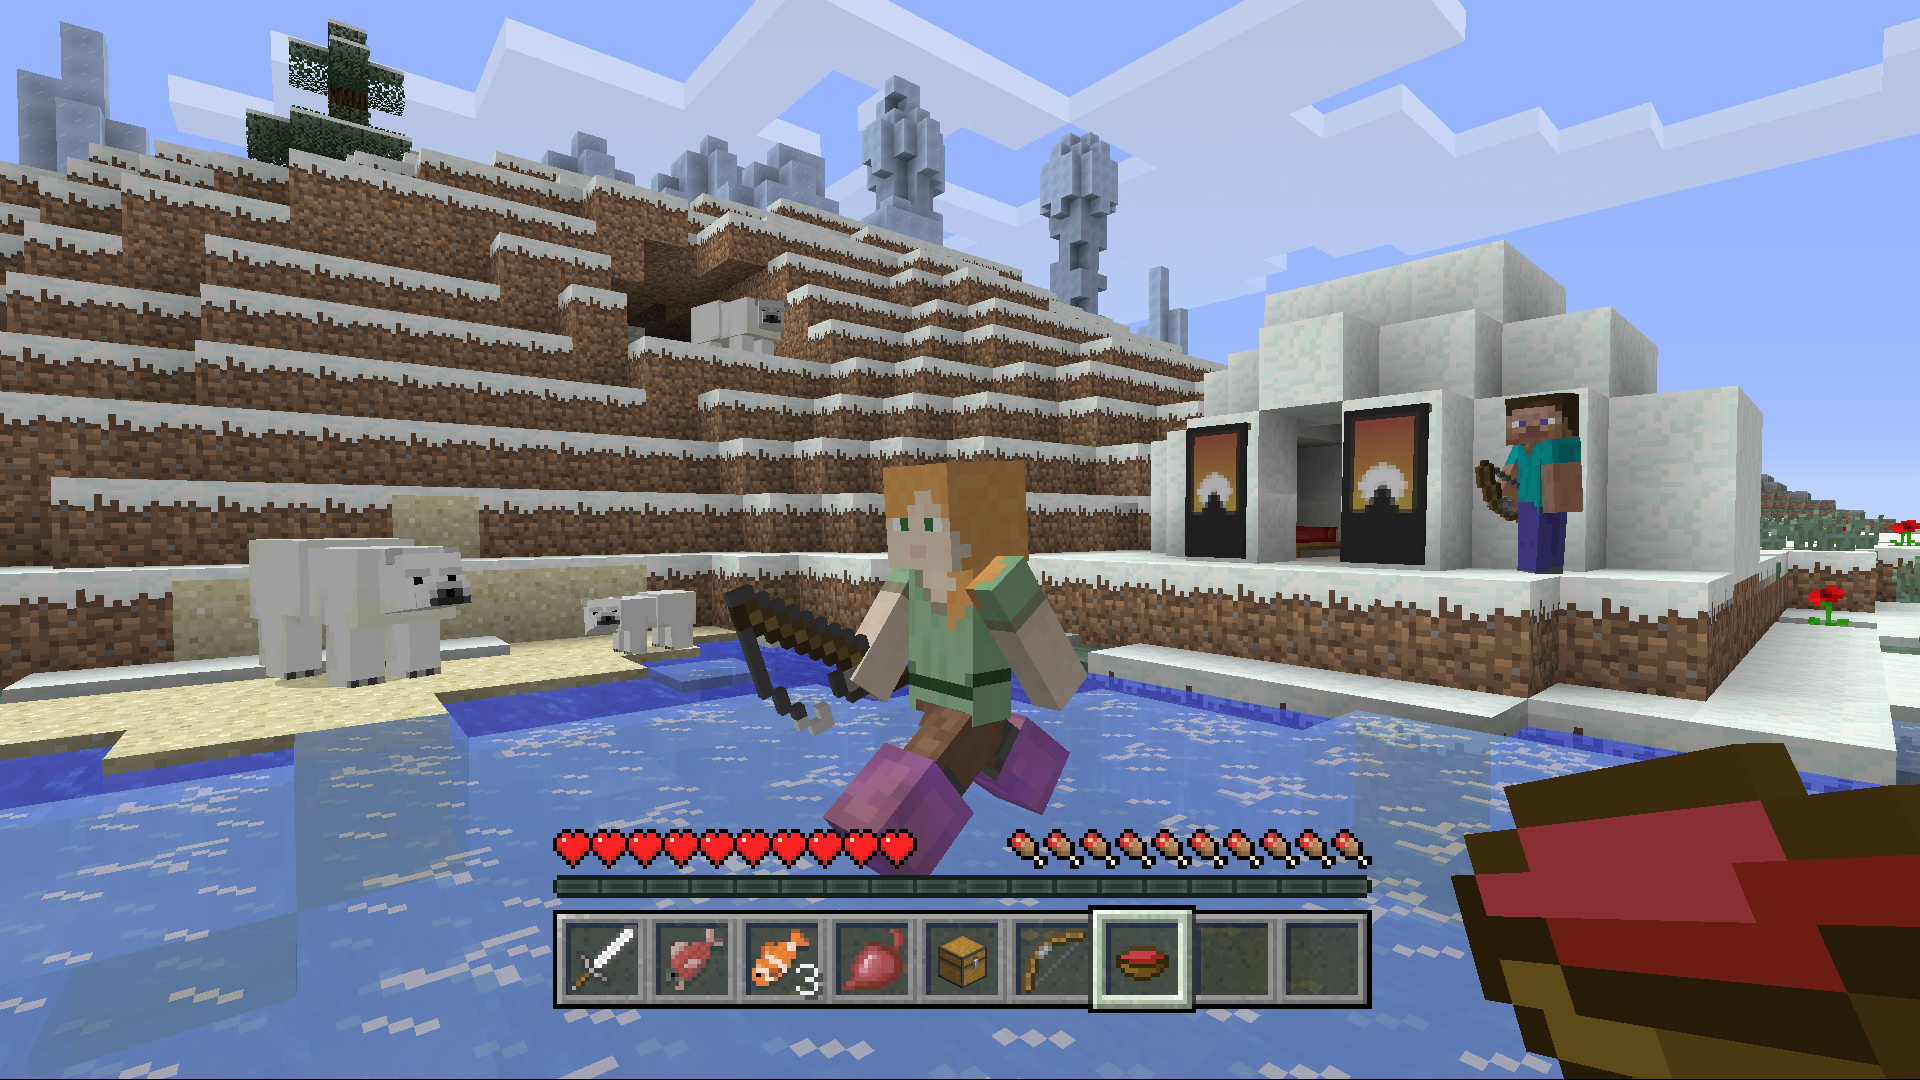 Minecraft October Update - Banners and Polar Bears